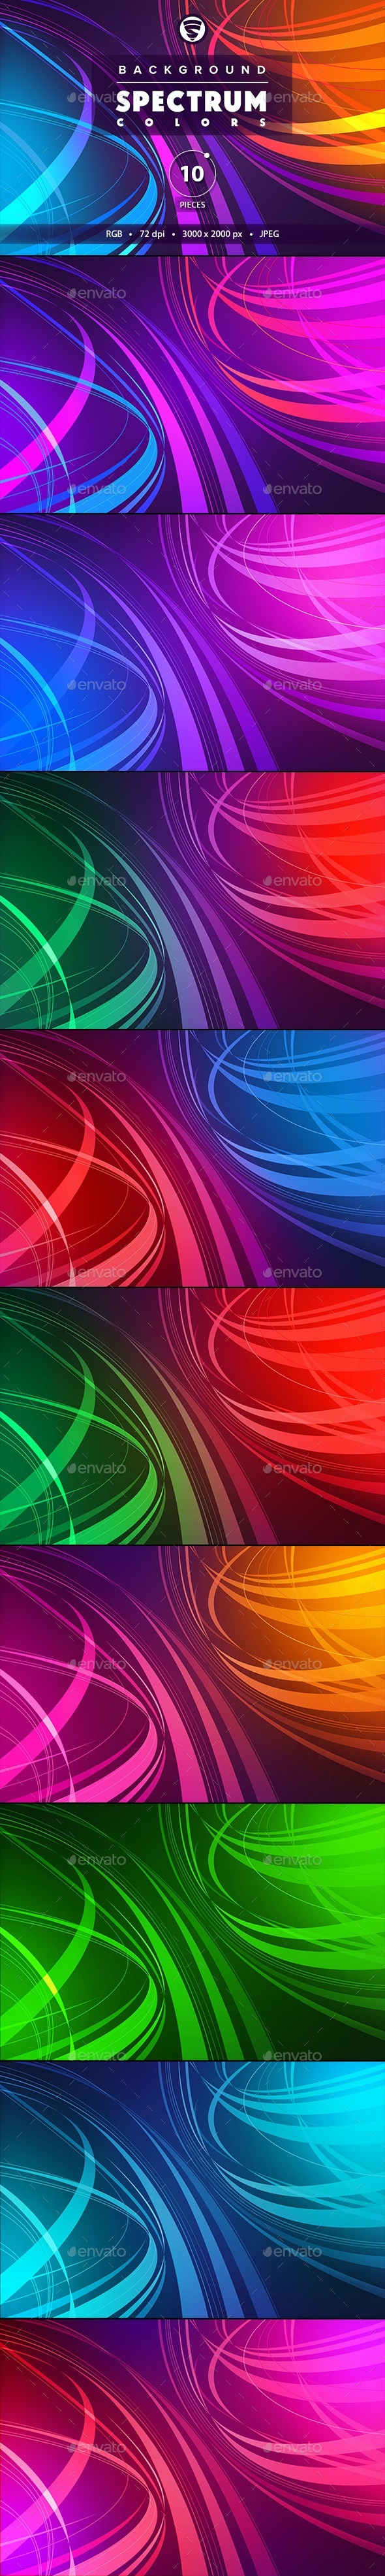 10 Backgrounds Spectrum colors - Abstract Backgrounds